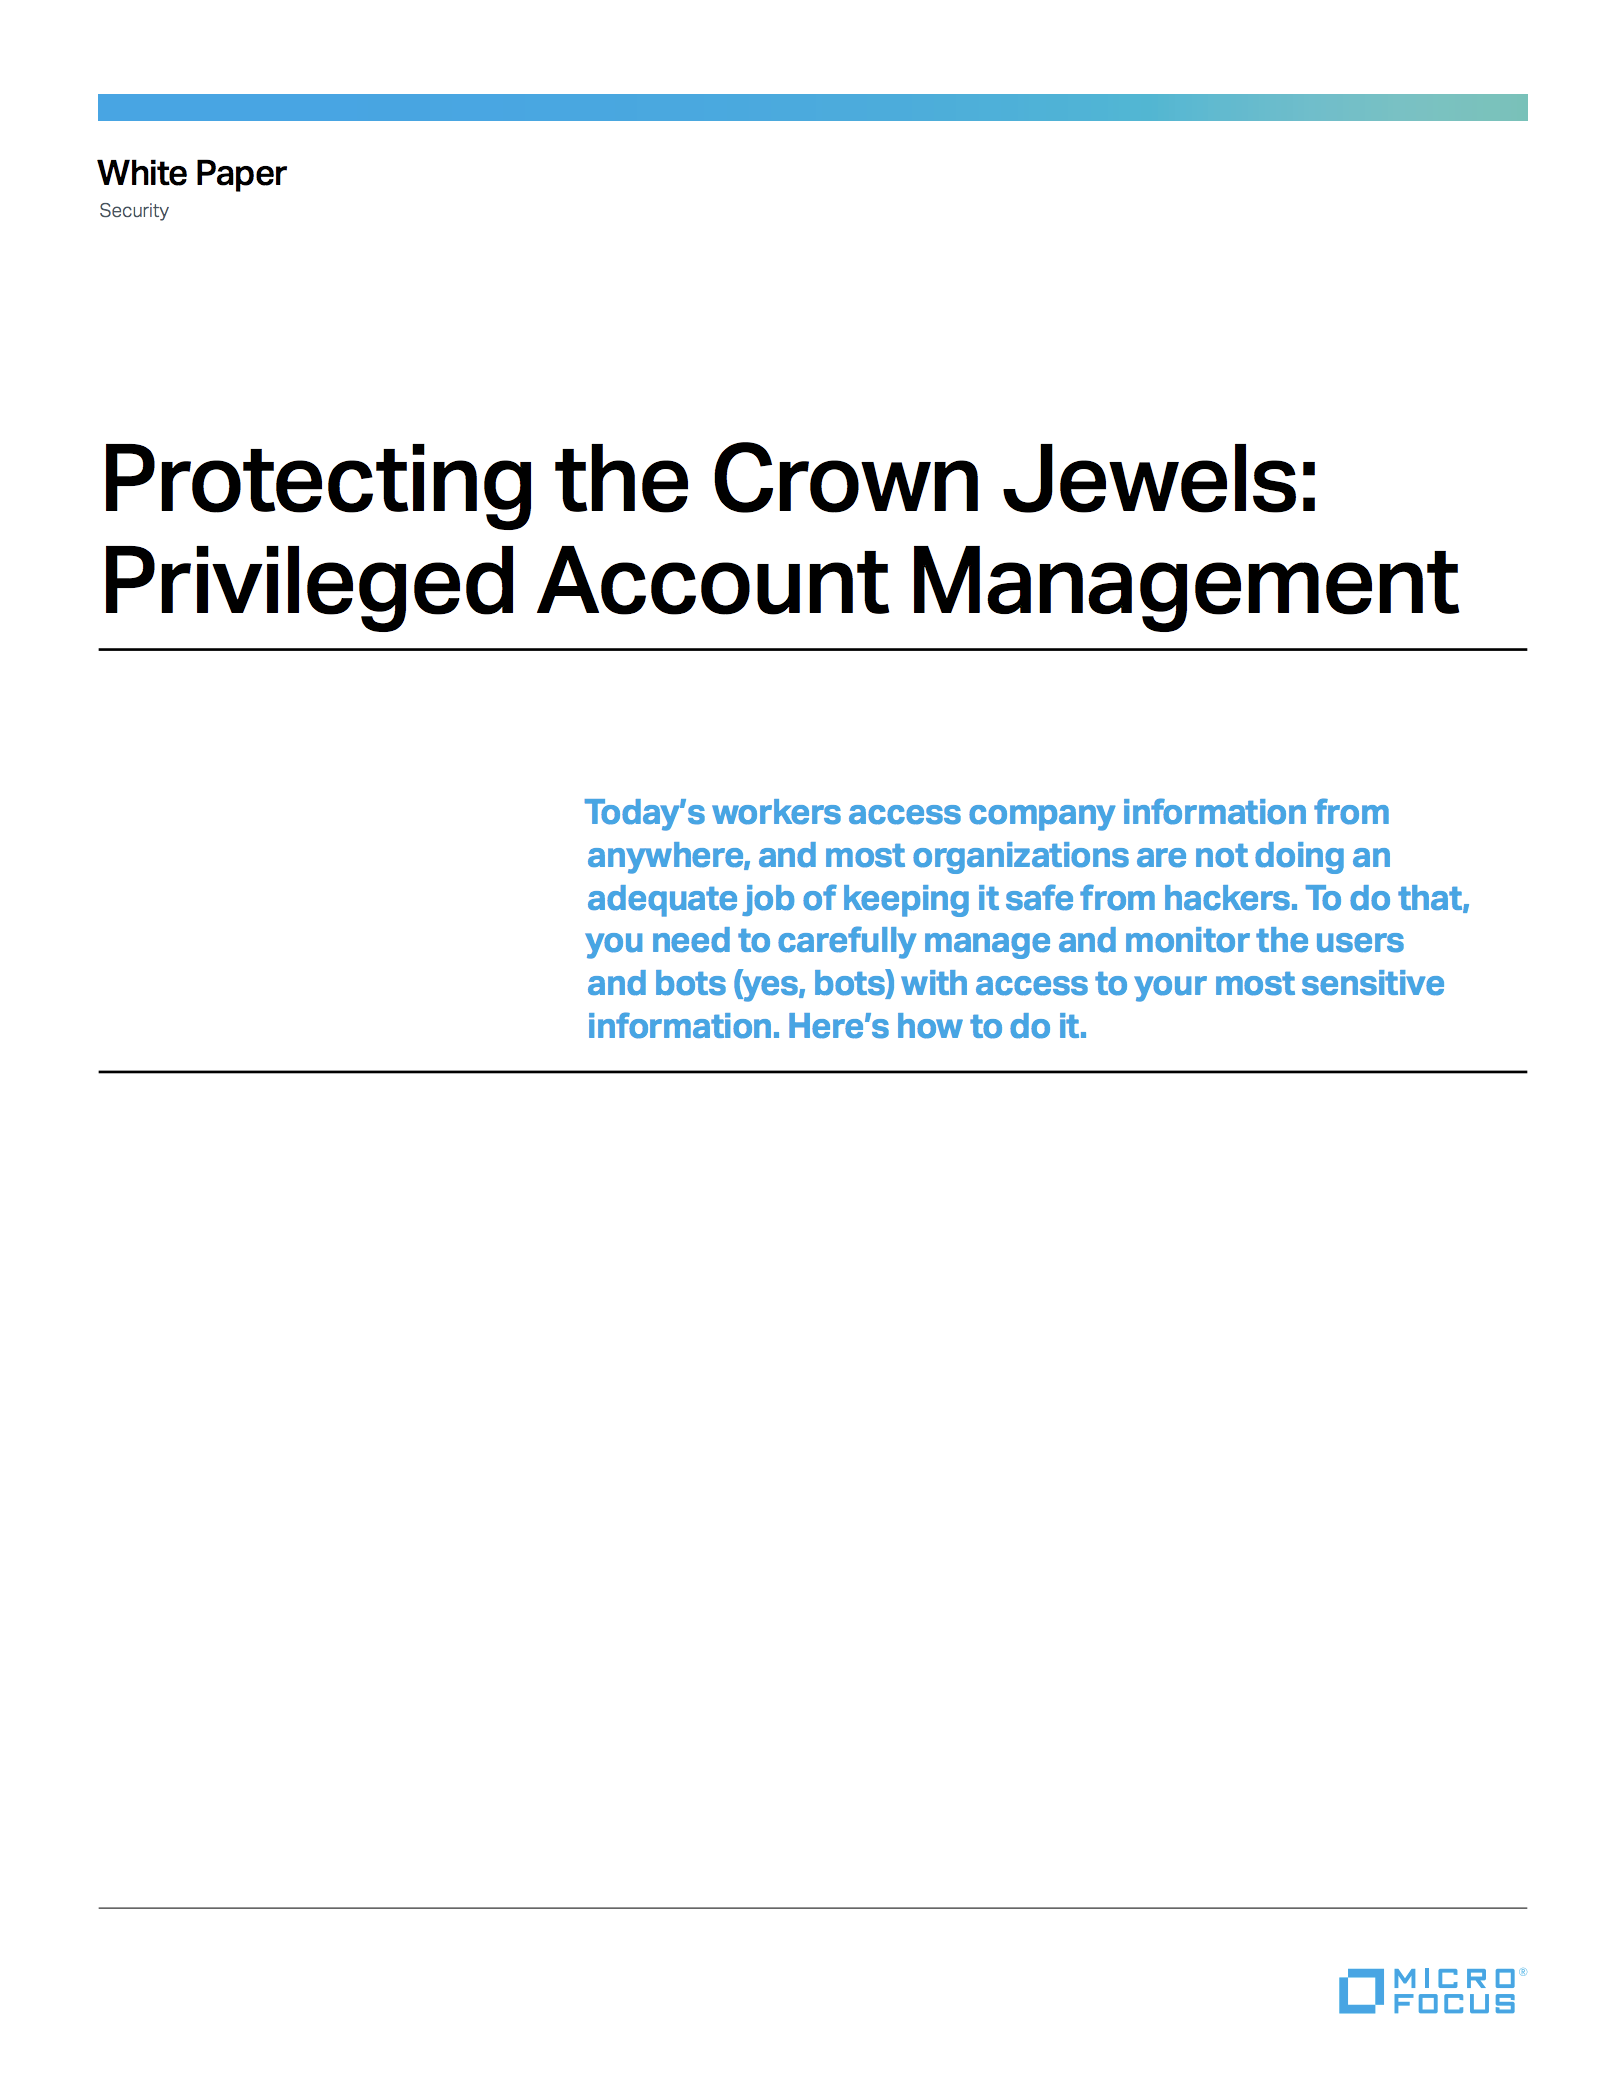 Protecting the Crown Jewels: Privileged Account Management